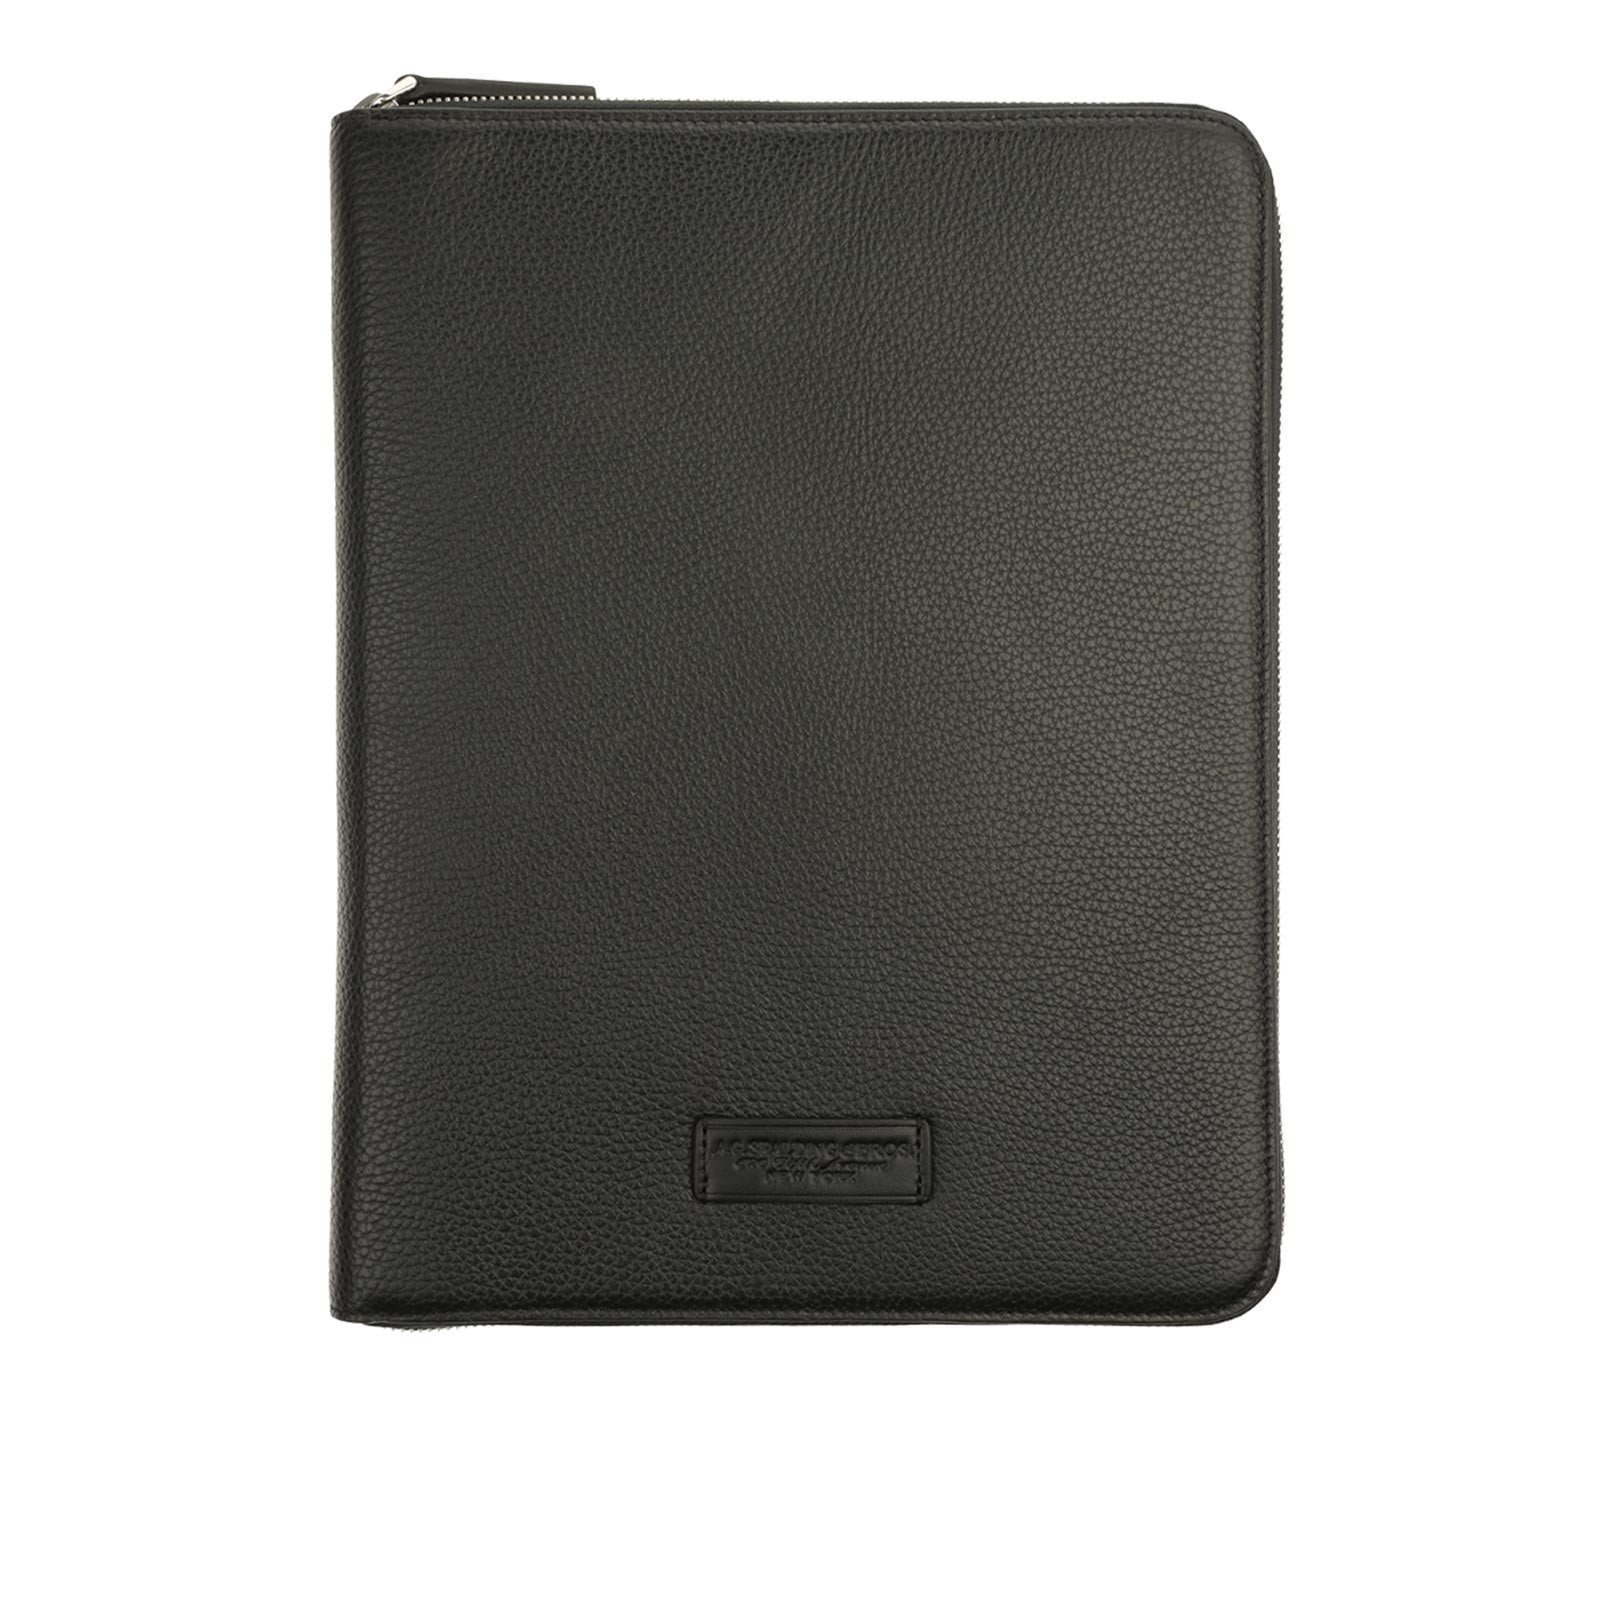 A.G. Spalding and Bros. Vermont Calf Leather A4 Notebook Holder with Zip, Black